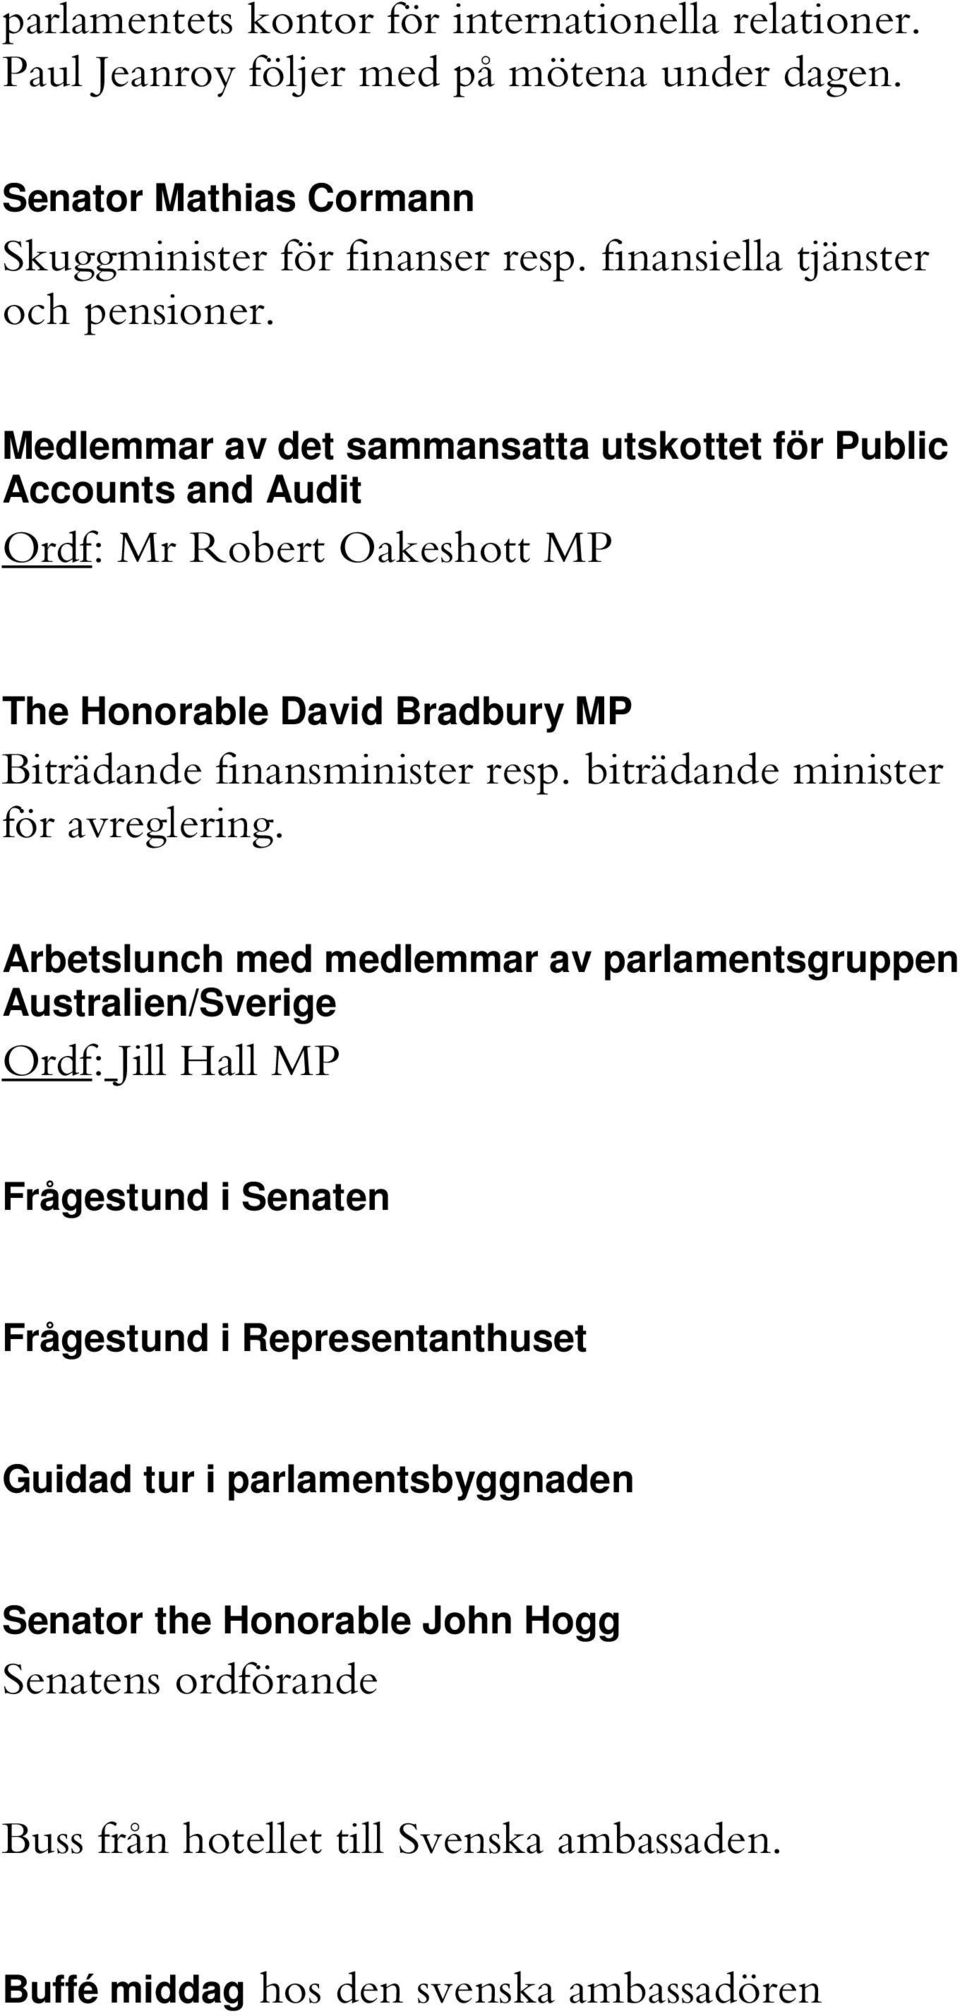 Medlemmar av det sammansatta utskottet för Public Accounts and Audit Ordf: Mr Robert Oakeshott MP The Honorable David Bradbury MP Biträdande finansminister resp.